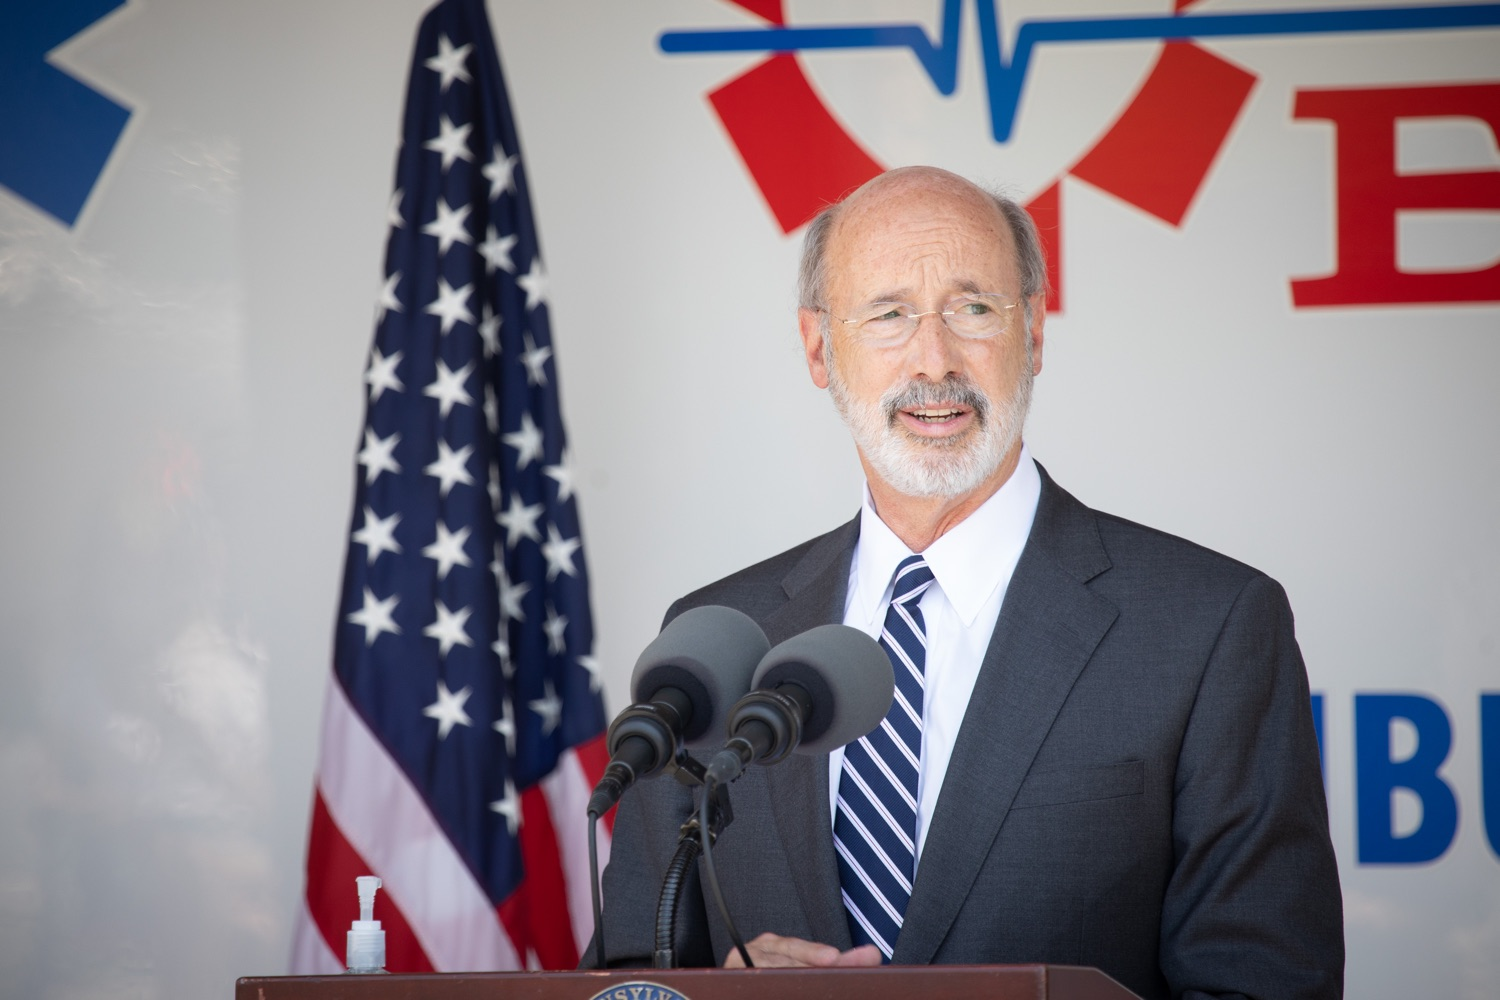 "<a href=""https://filesource.wostreaming.net/commonwealthofpa/photo/18180_gov_first_responders_dz_002.jpg"" target=""_blank"">⇣ Download Photo<br></a>Pennsylvania Governor Tom Wolf speaking with Lancaster EMS employees and their families. Governor Tom Wolf visited the Millersville location of Lancaster EMS today to thank first responders and learn about how they are adapting their critical work during the states response to the COVID-19 pandemic.  Millersville, PA  July 30, 2020"